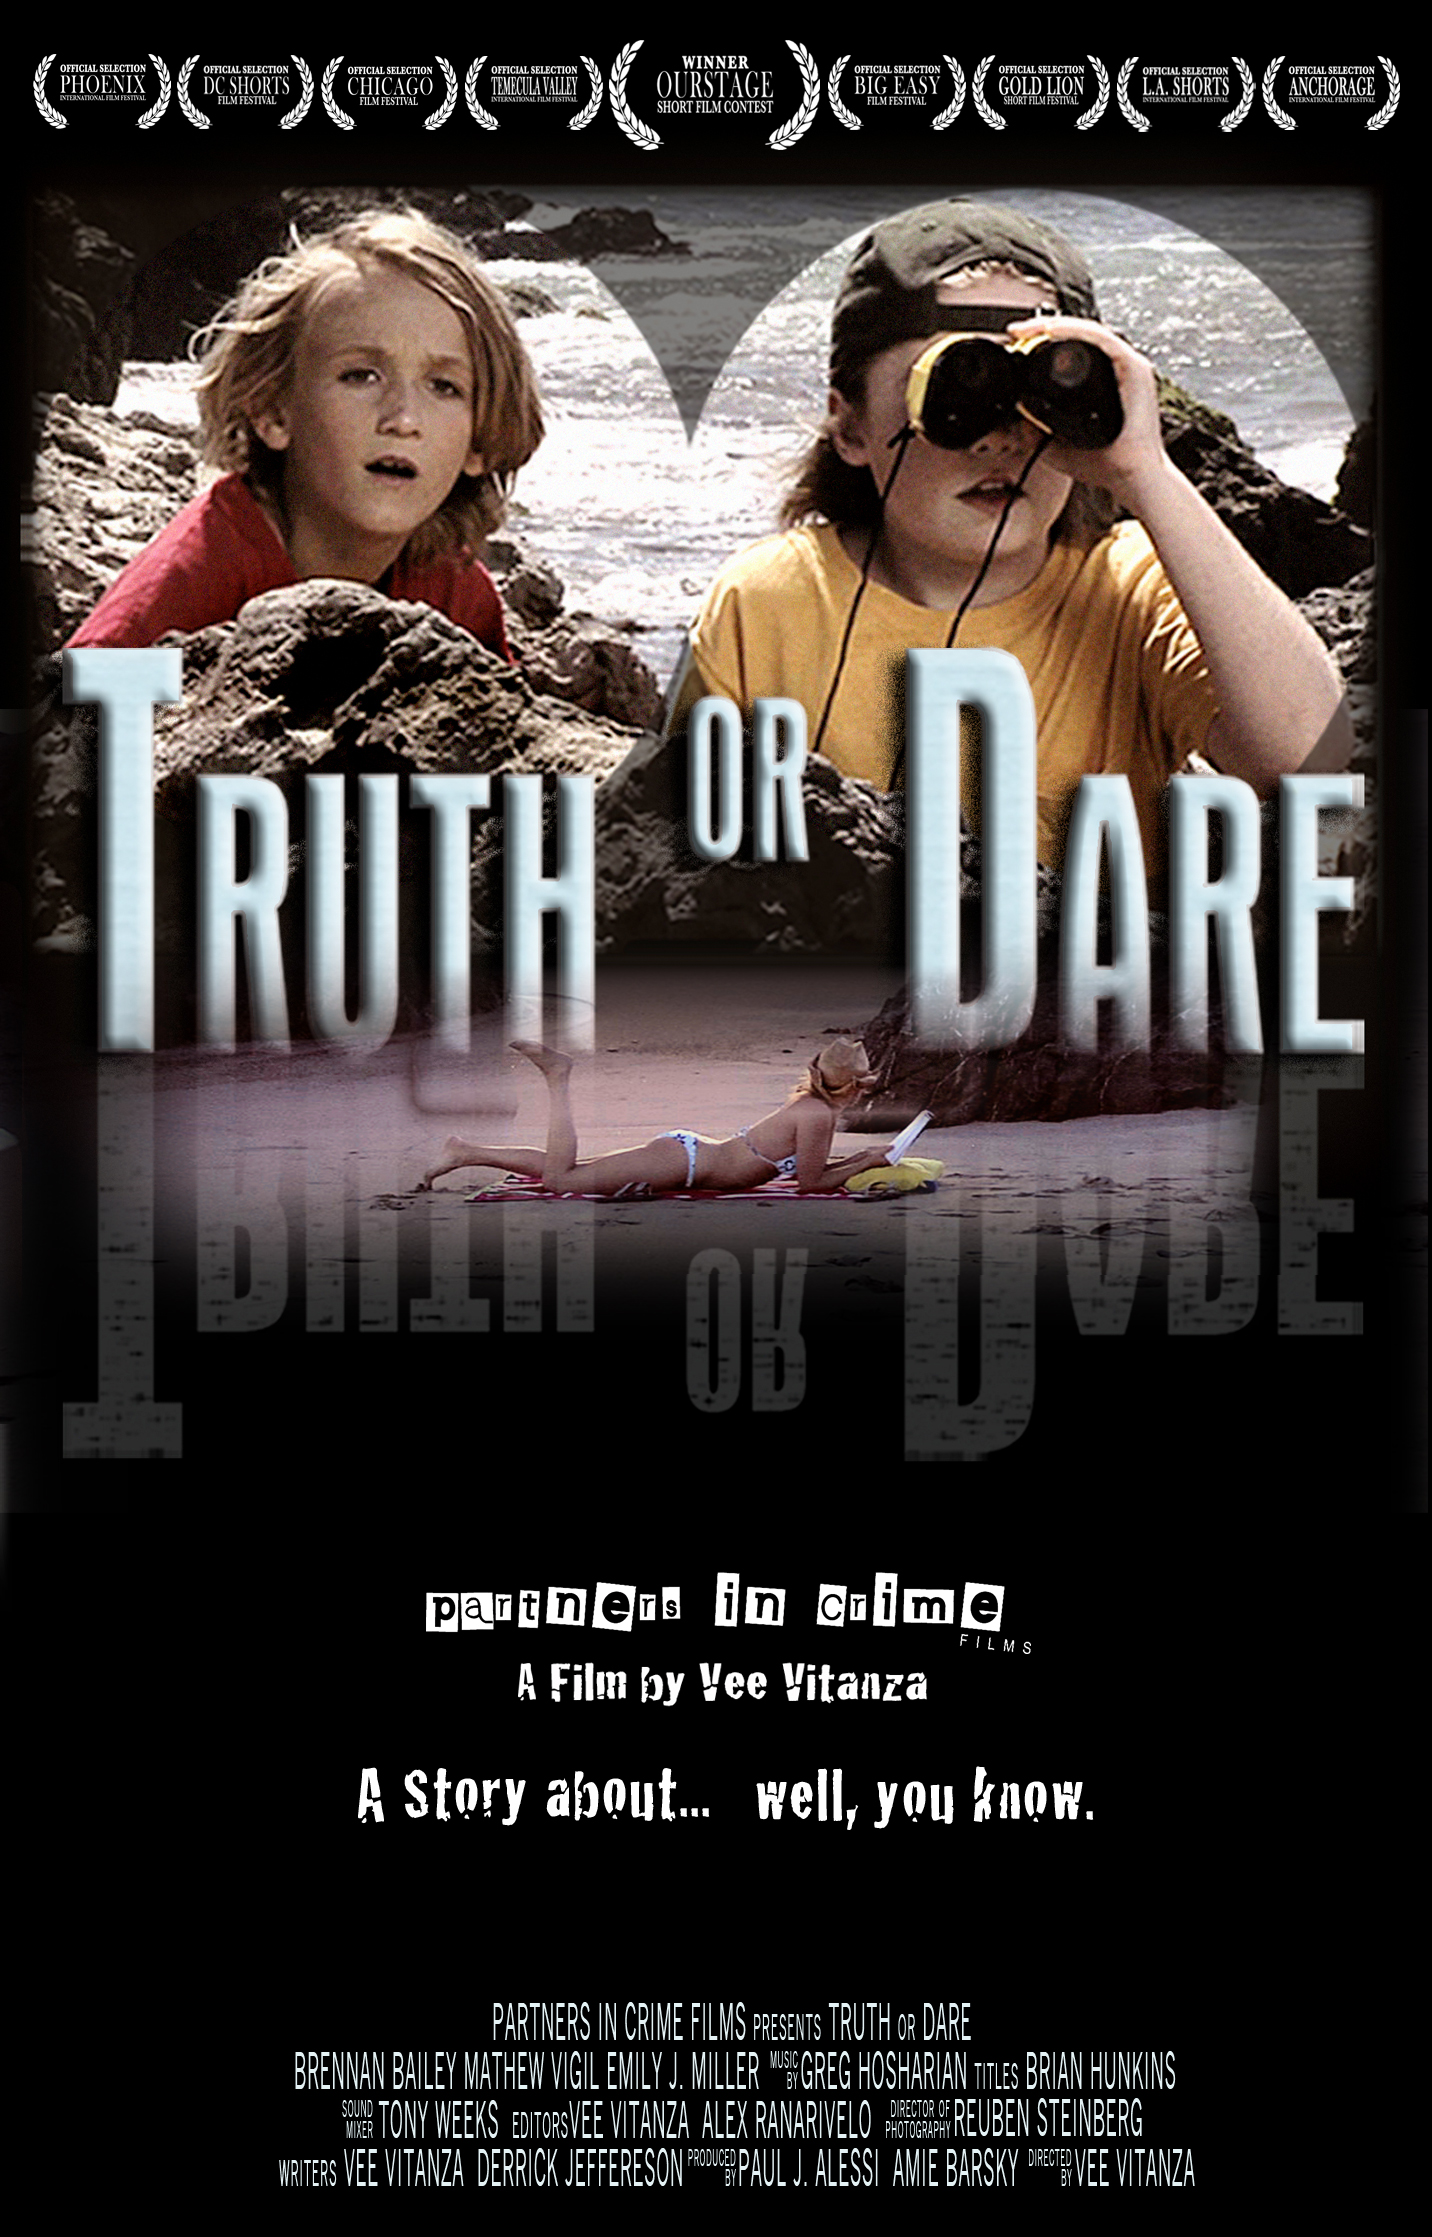 Truth or Dare (2007)